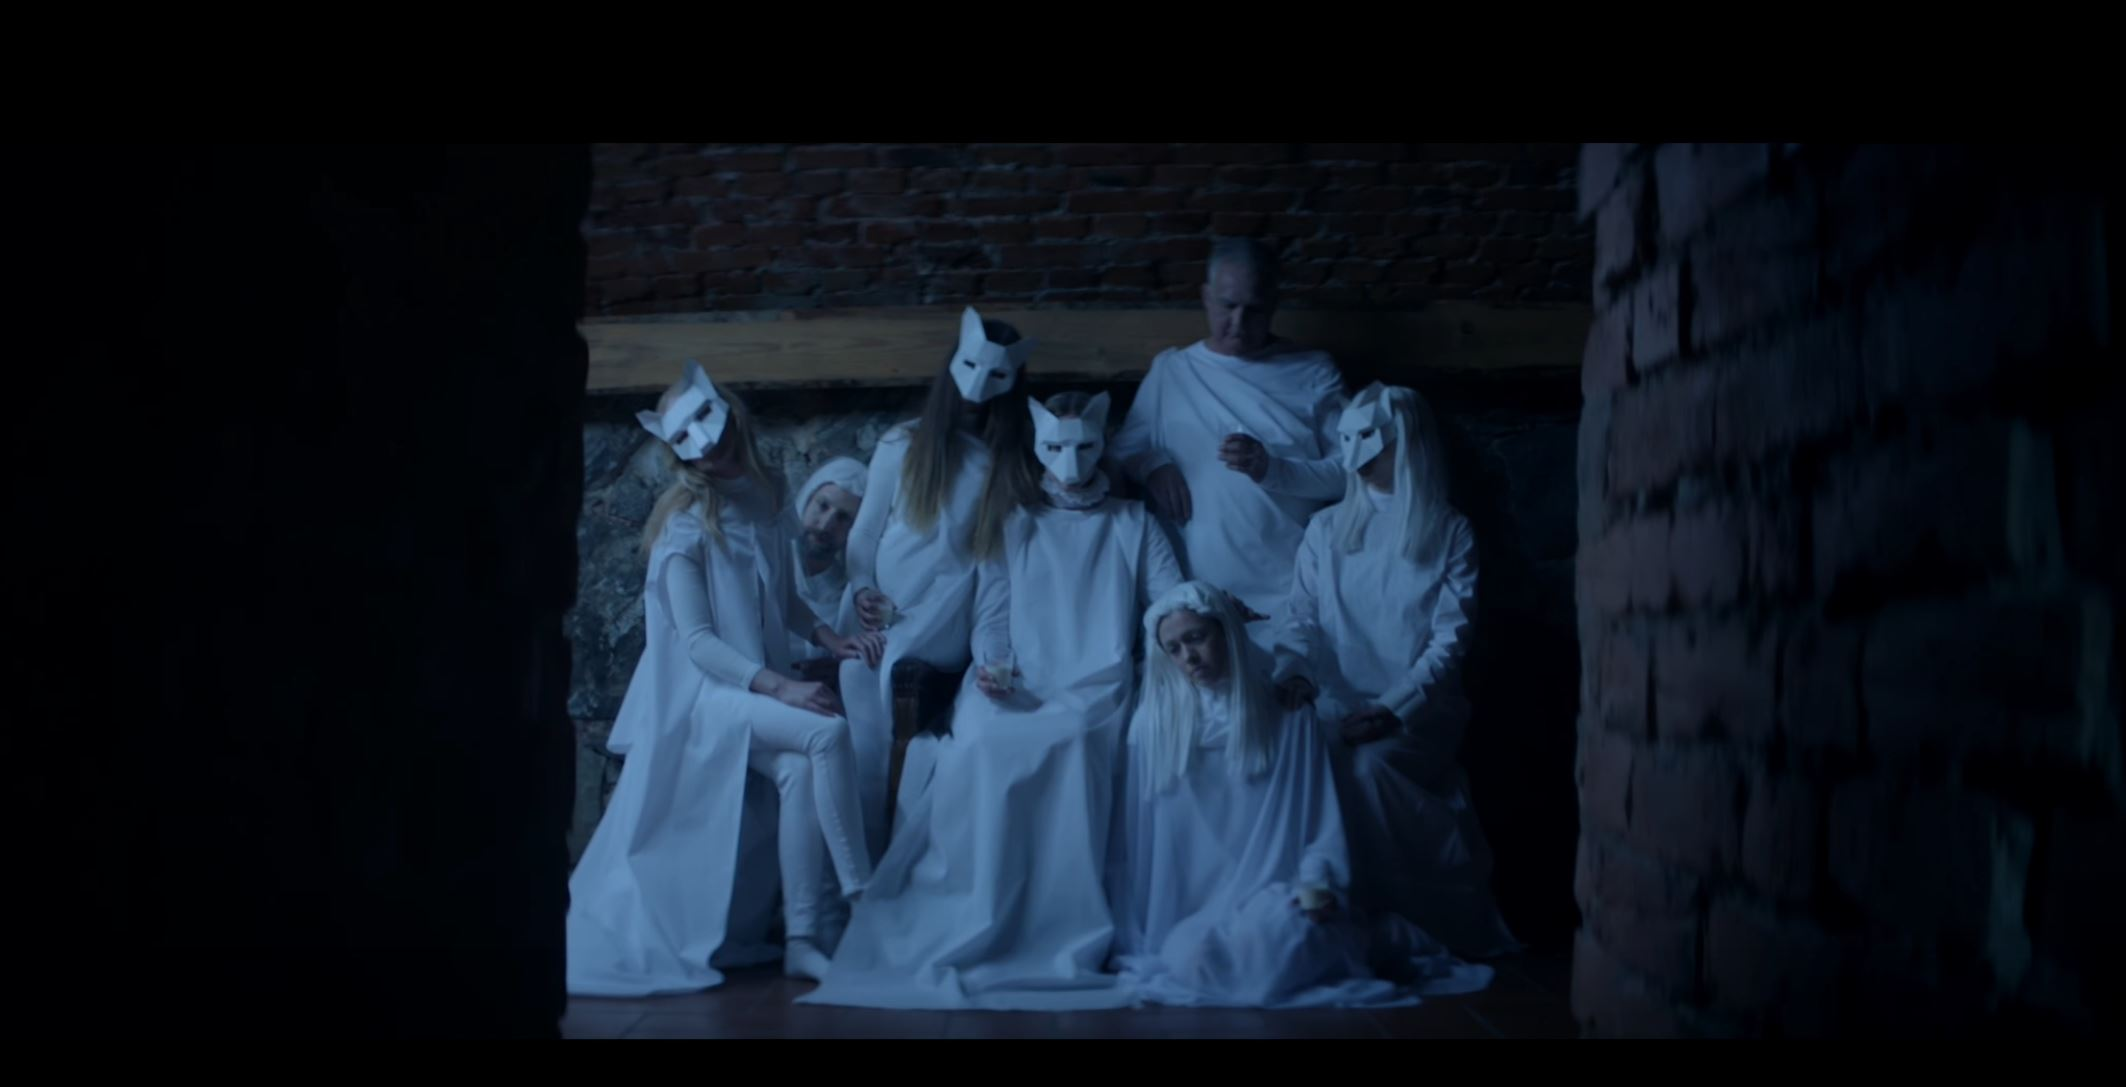 ionnalee´s first single aside from the iamamiwhoami project Video: NOT HUMAN